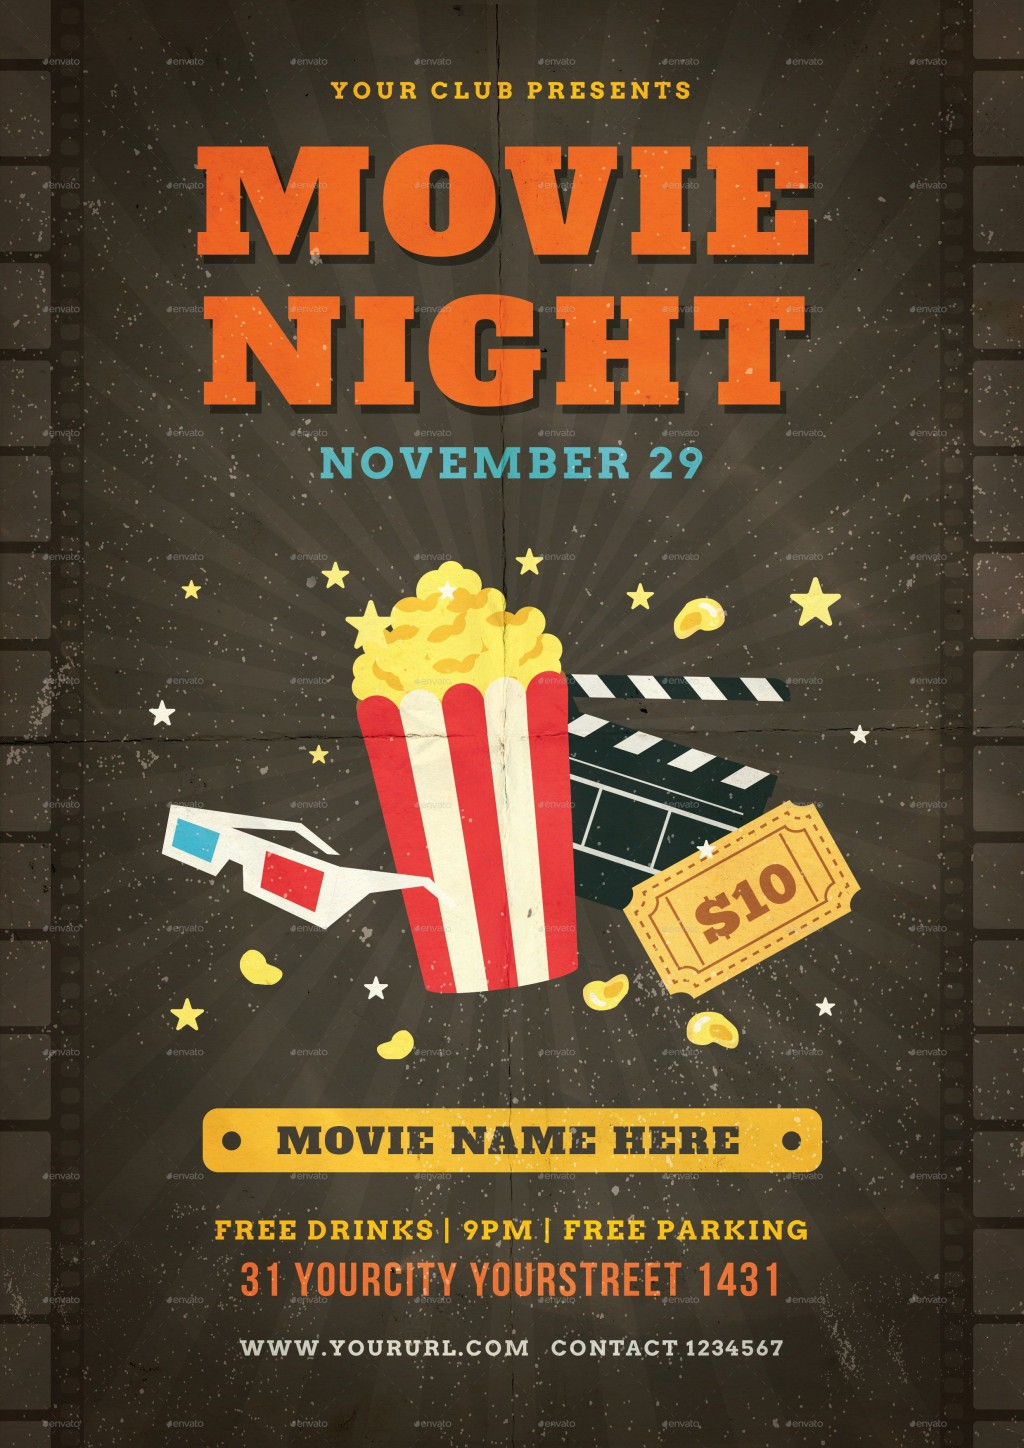 000 Remarkable Movie Night Flyer Template Highest Quality  Editable Psd FreeLarge